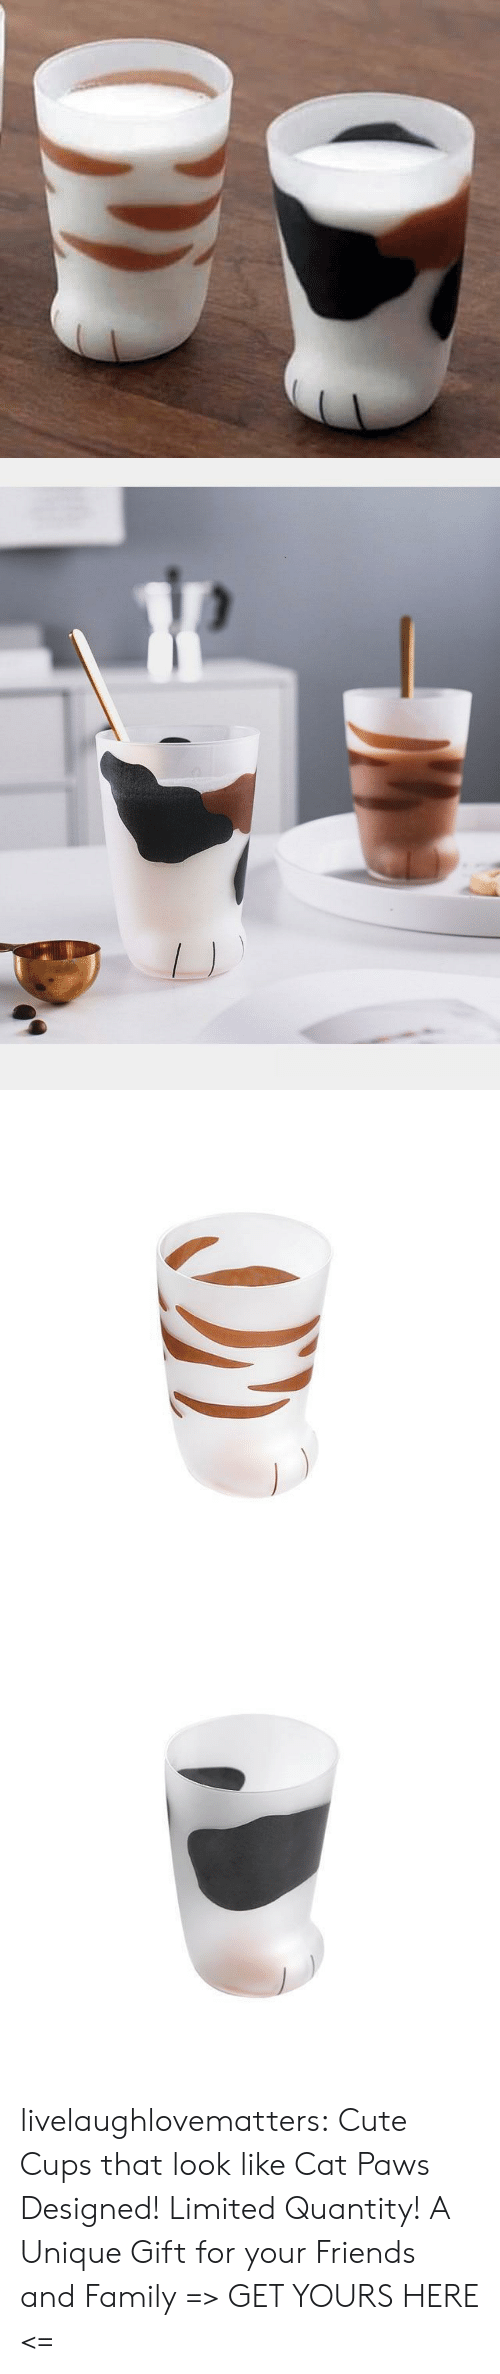 Limited: livelaughlovematters:  Cute Cups that look like Cat Paws Designed! Limited Quantity! A Unique Gift for your Friends and Family => GET YOURS HERE <=